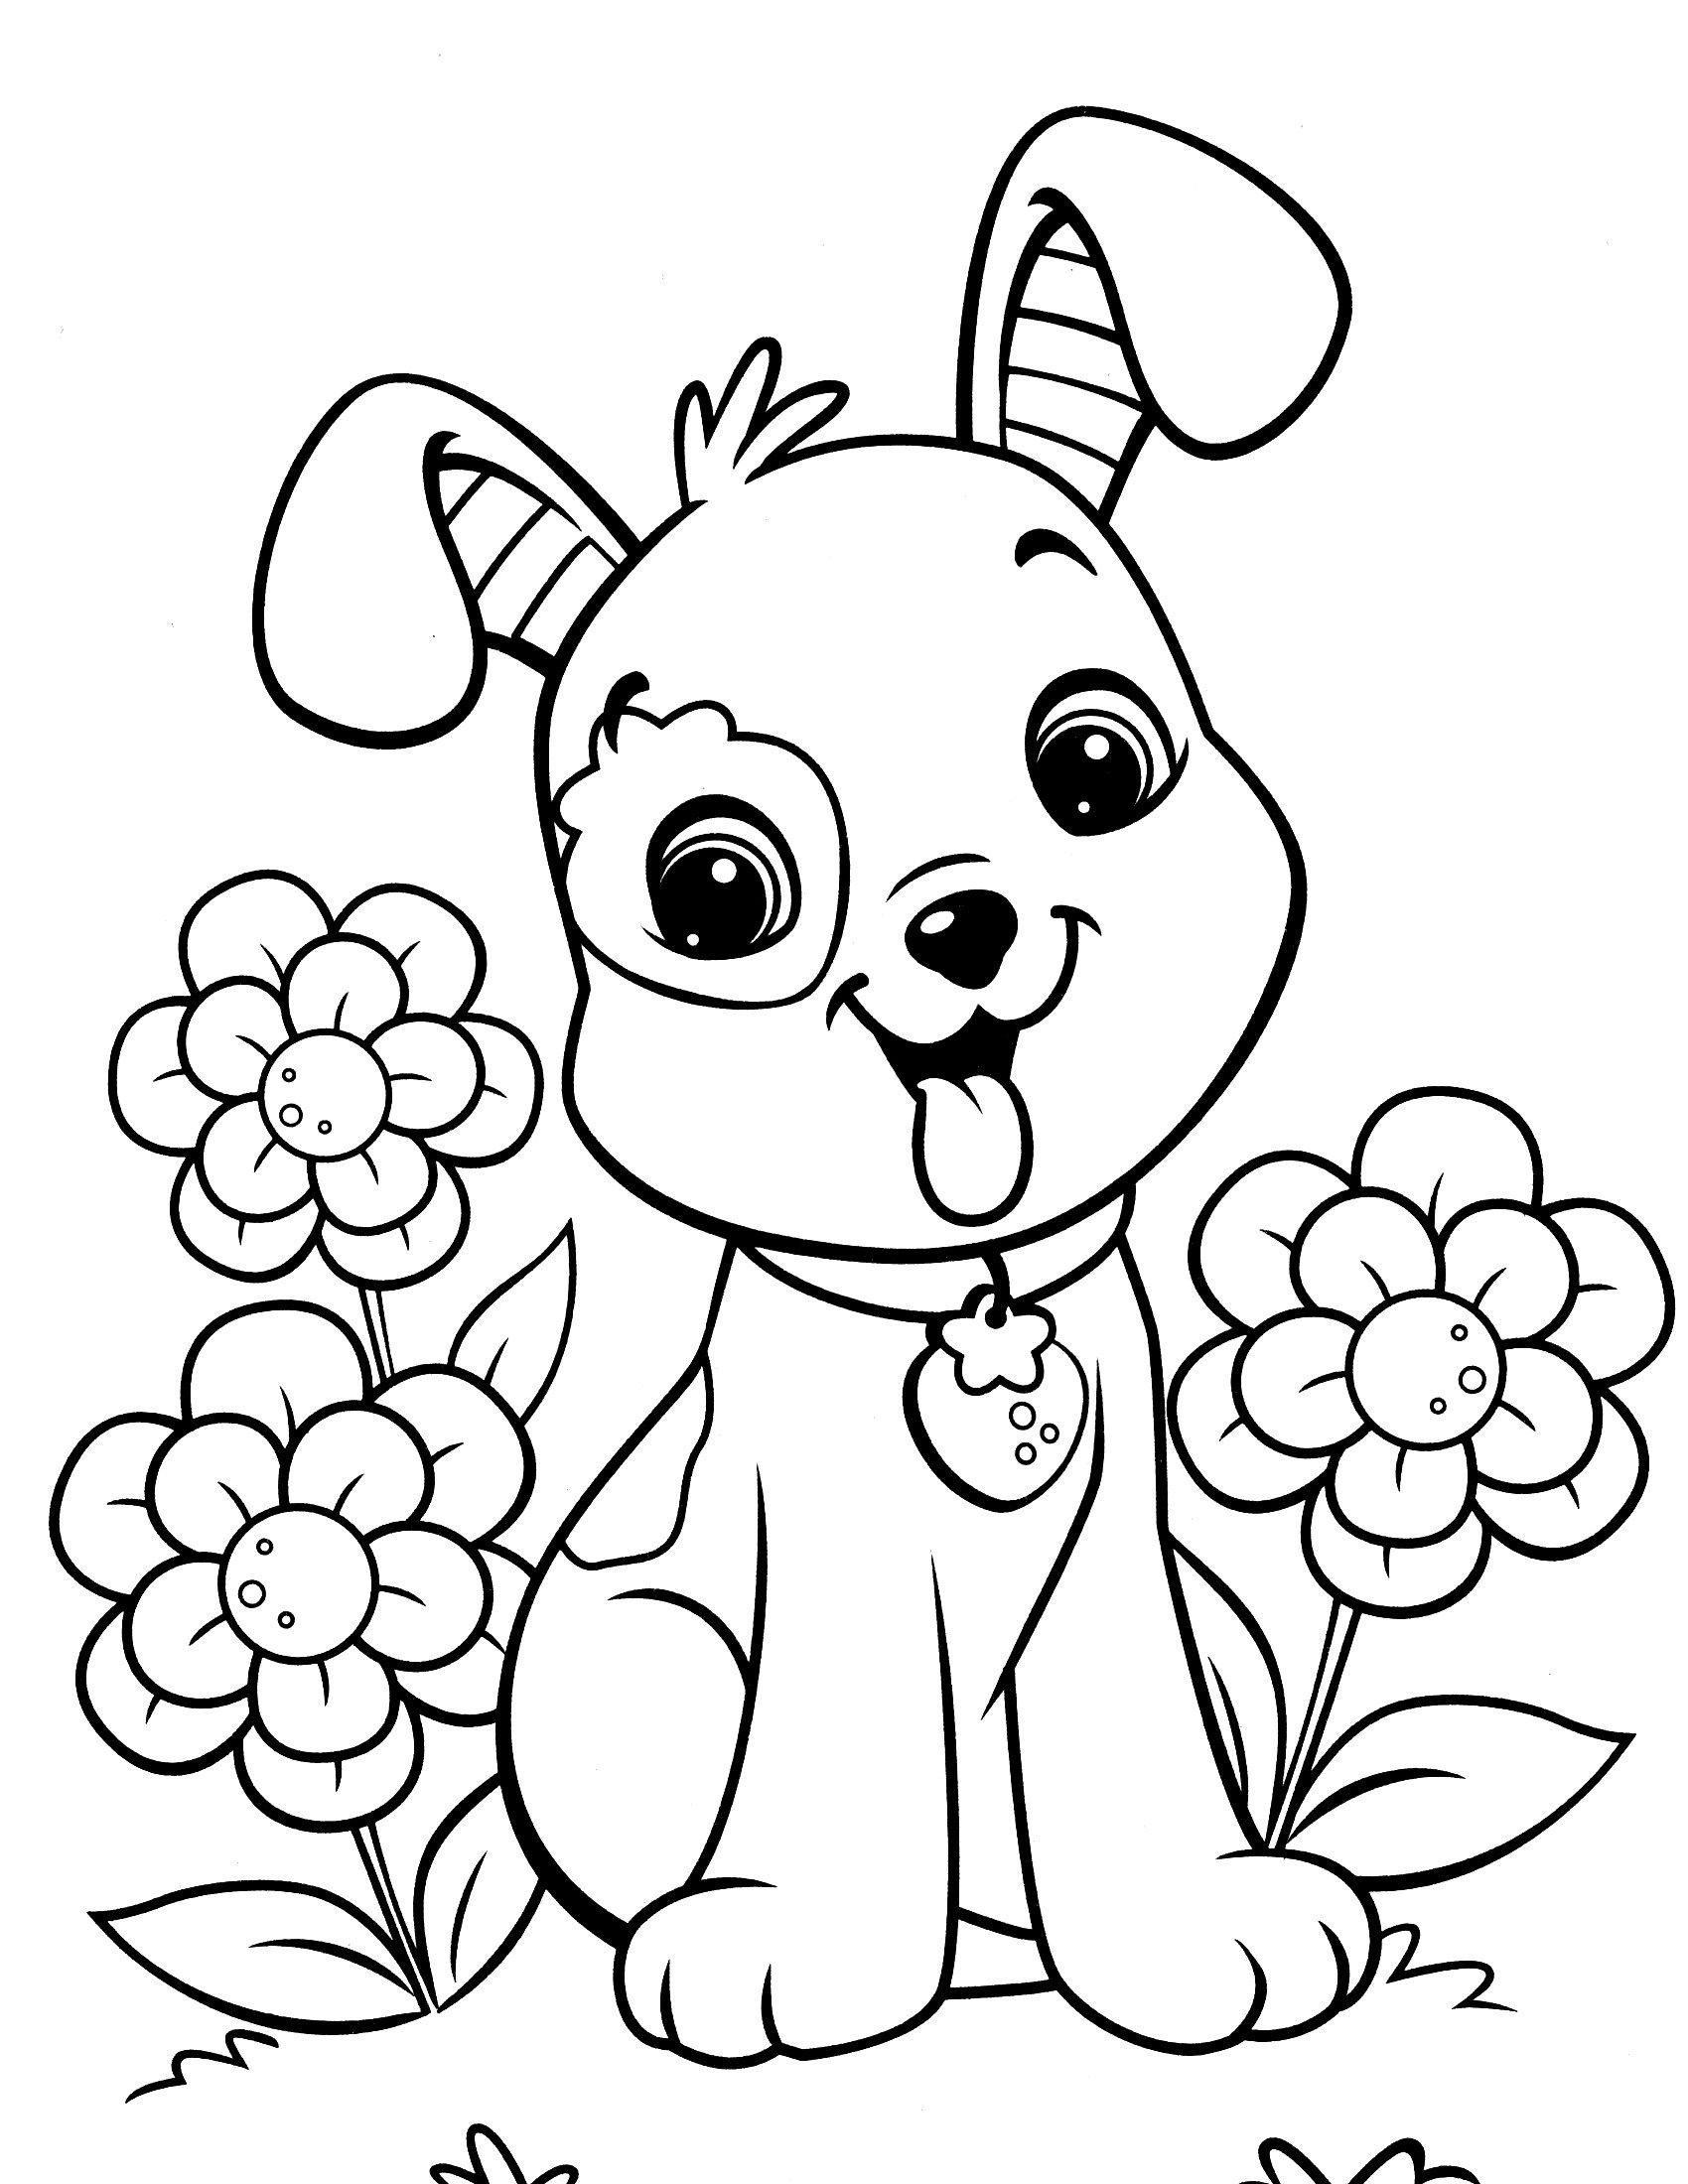 Image Result For Free Dog Coloring Pages | Colouring Pages | Dog - Colouring Pages Dogs Free Printable